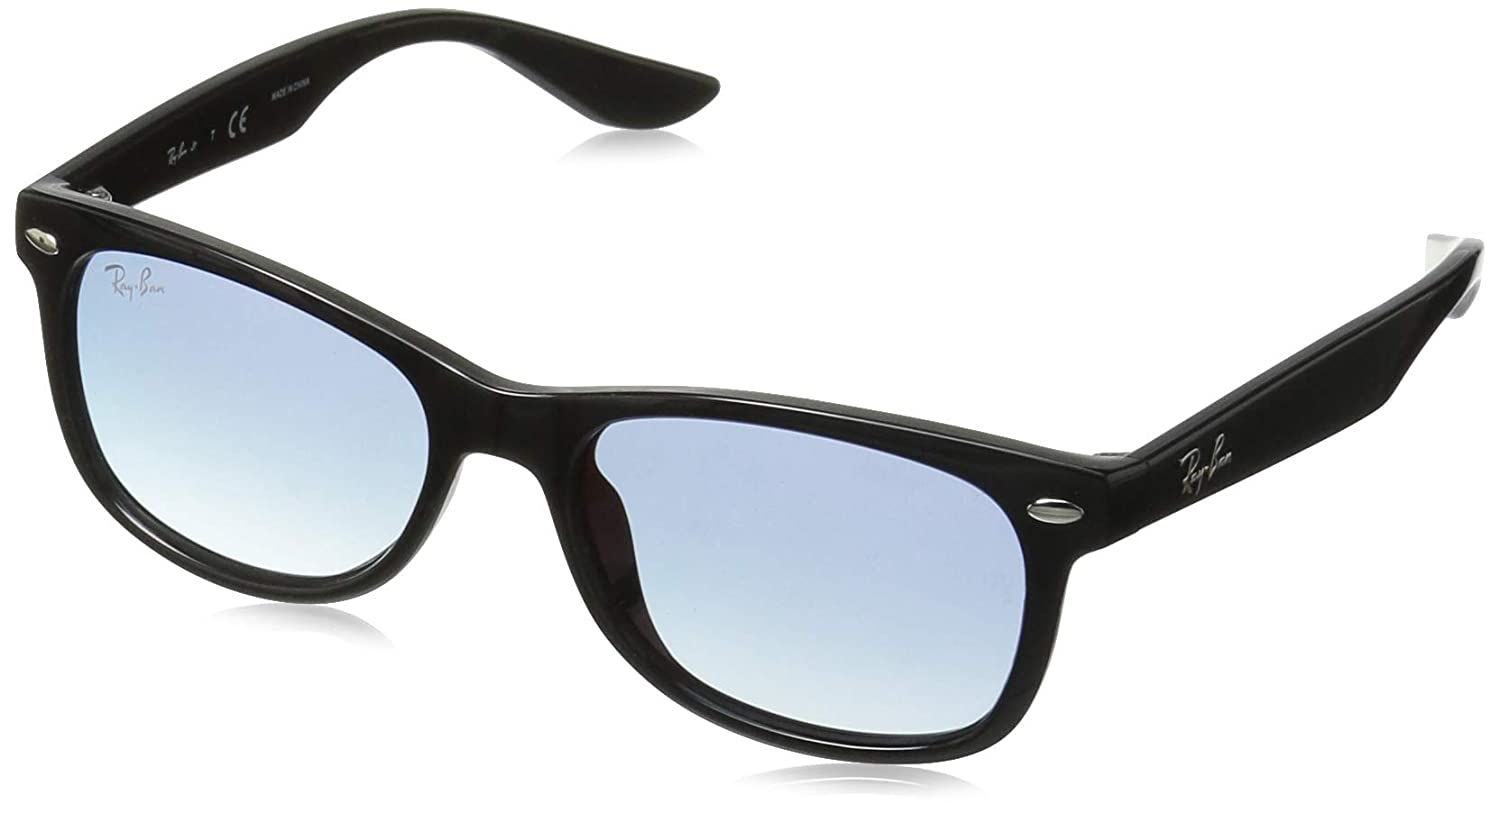 3c124ad8db Amazon.com  Ray-Ban Junior Kids  0rj9052s Iridium Square Sunglasses ...